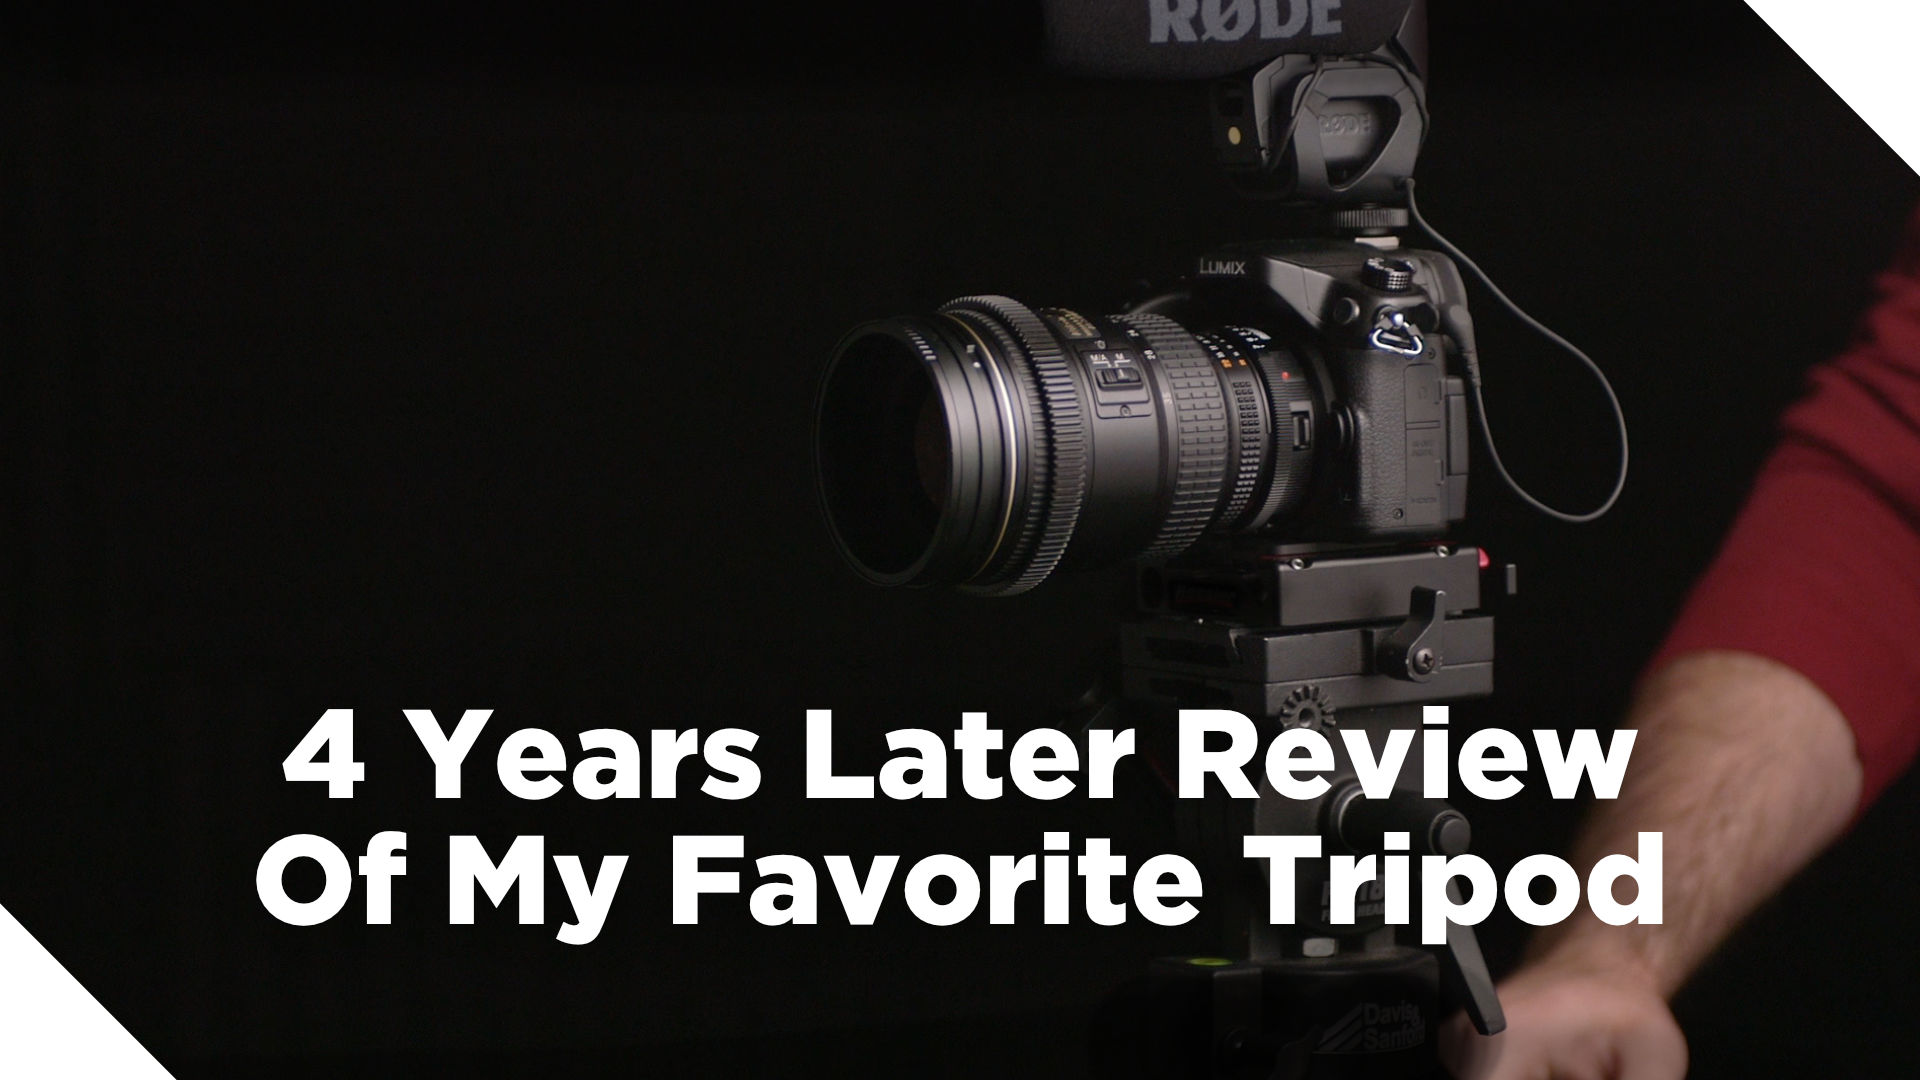 4 Years Later Review of My Favorite Tripod